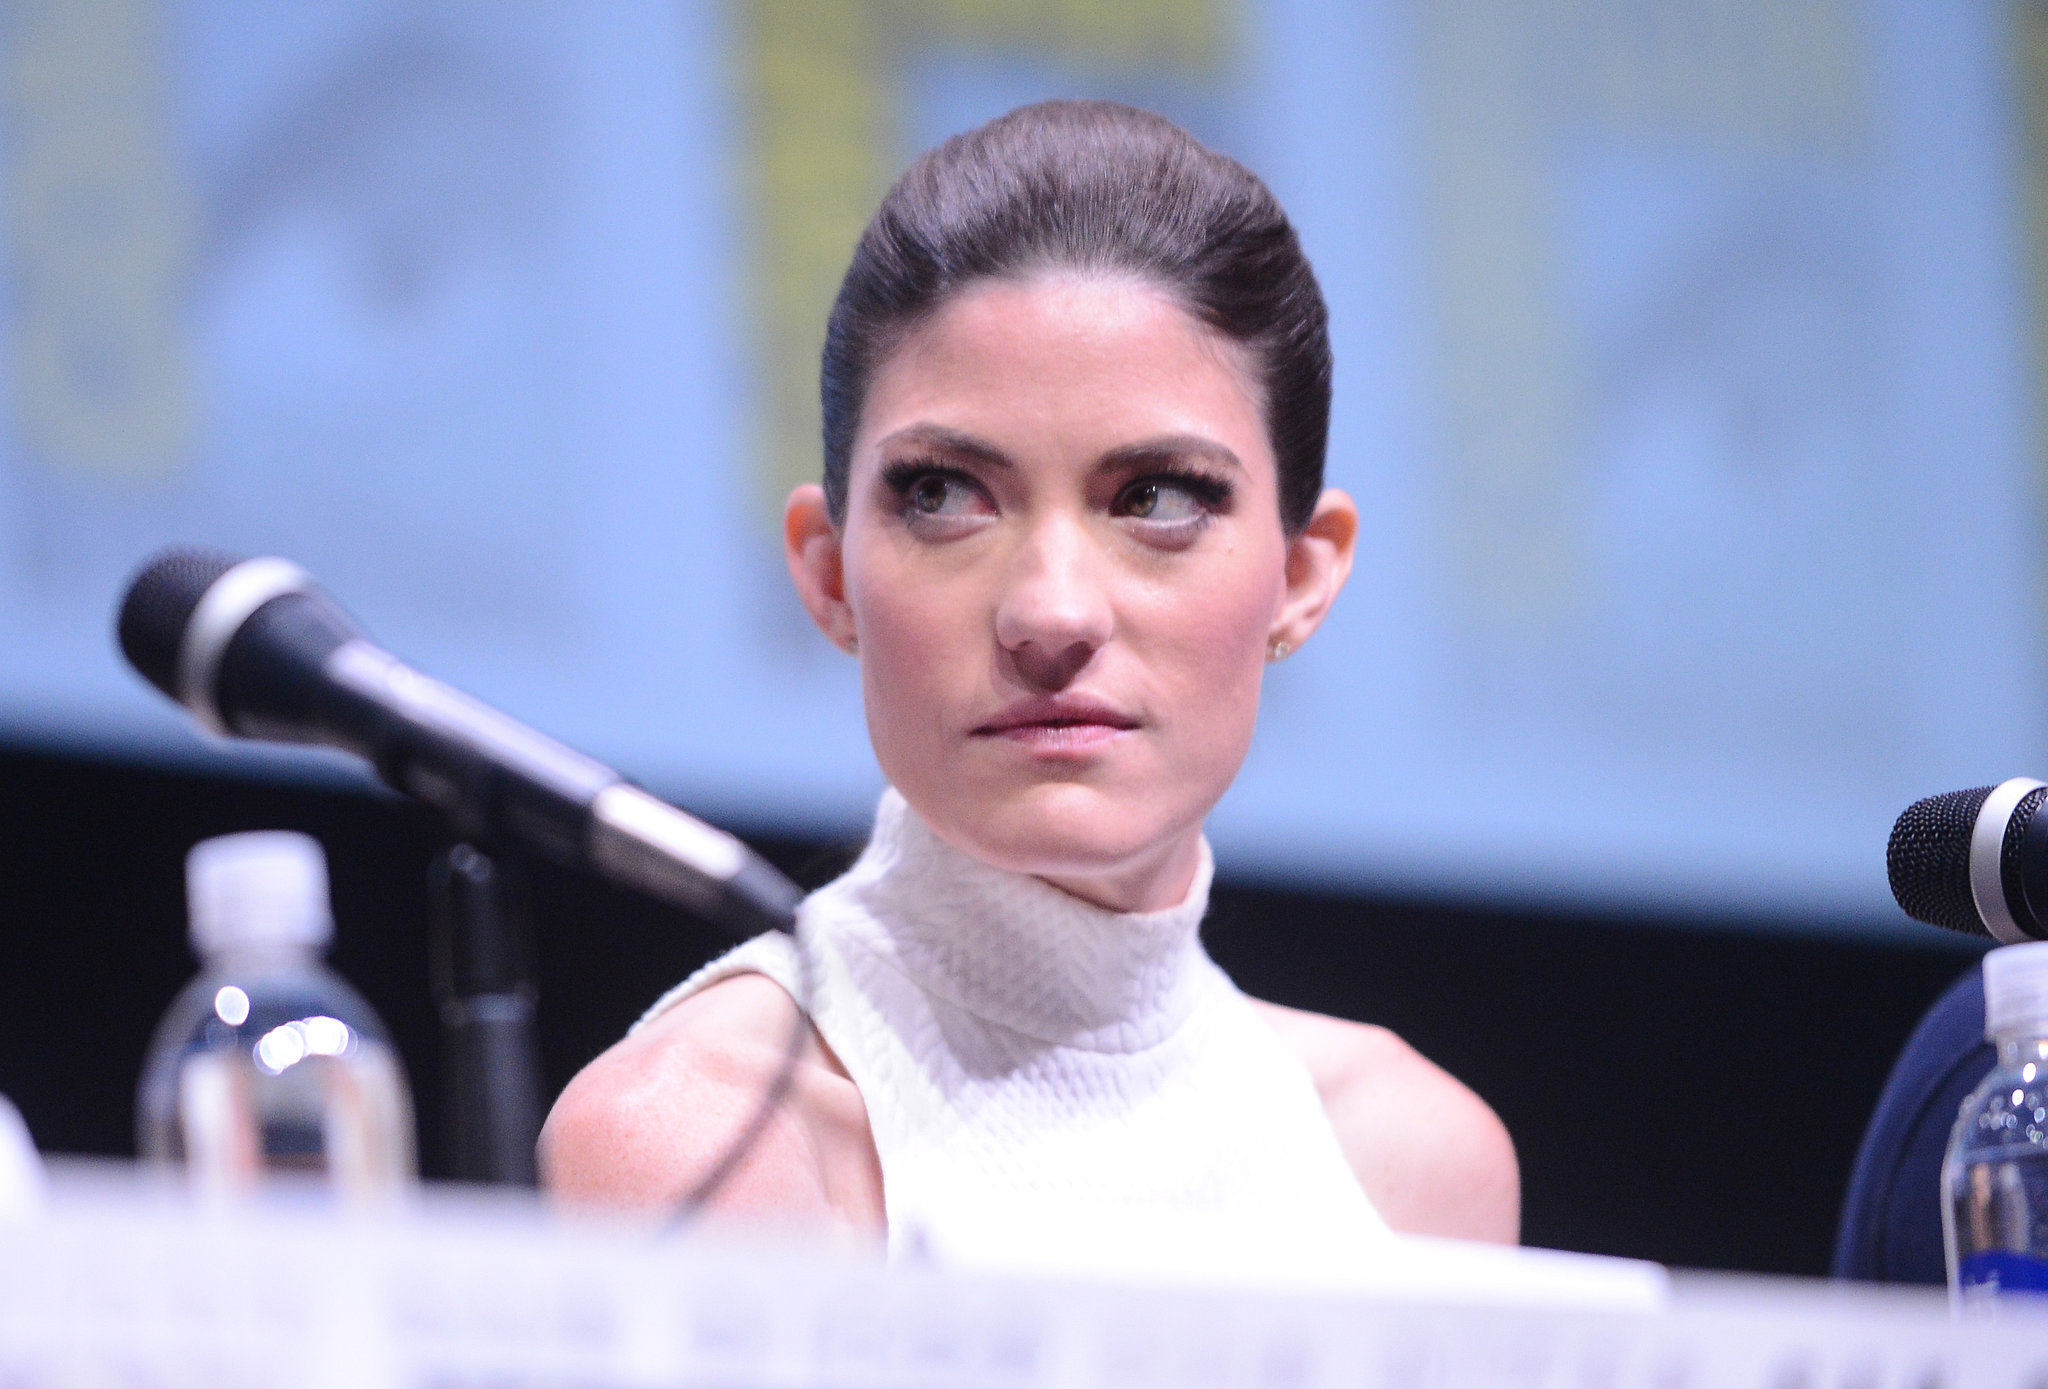 At the Dexter panel, Jennifer Carpenter opted for a simple, slicked-back ponytail.